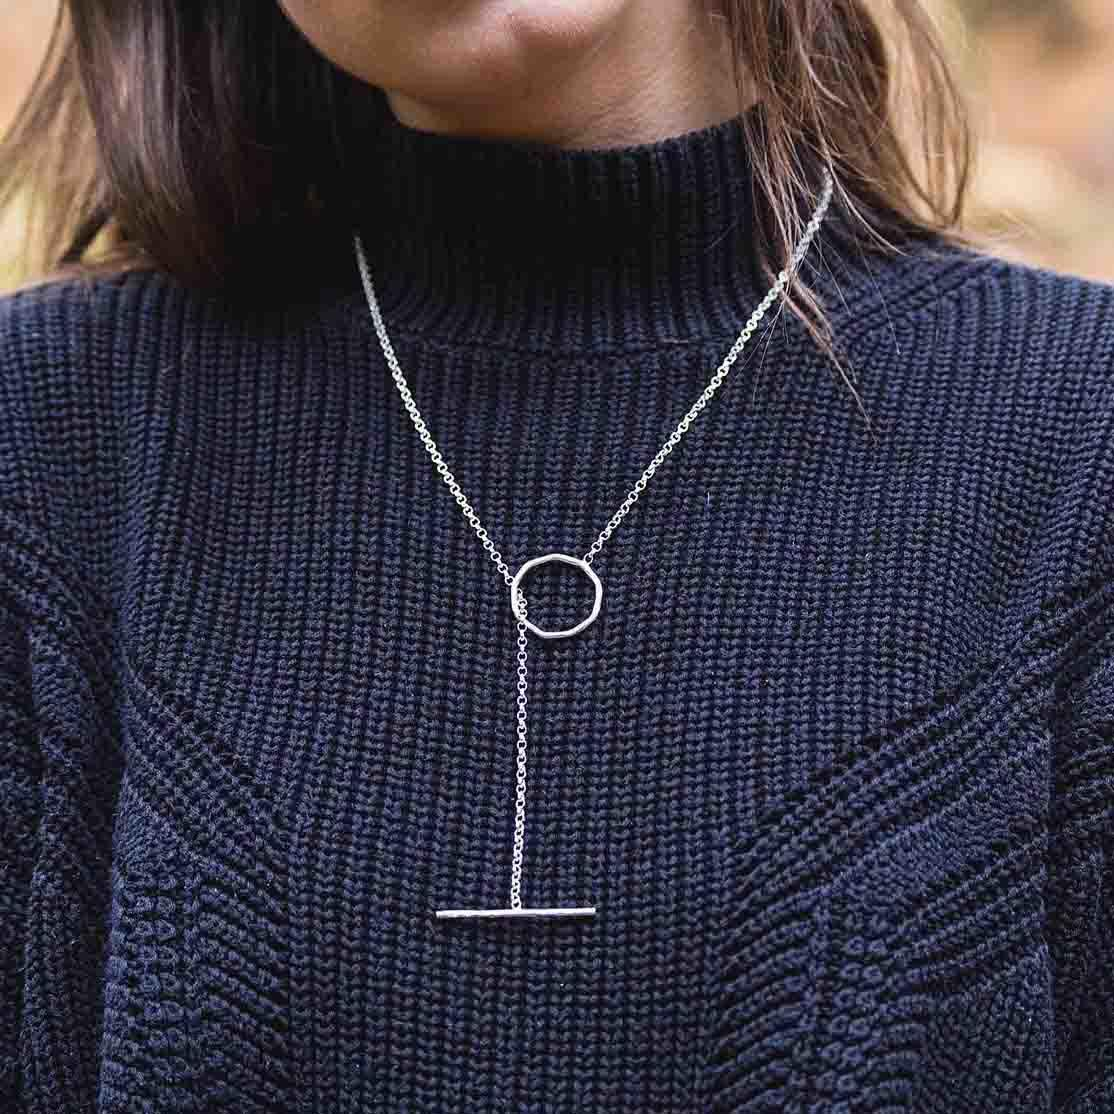 Thread Through Necklace - On